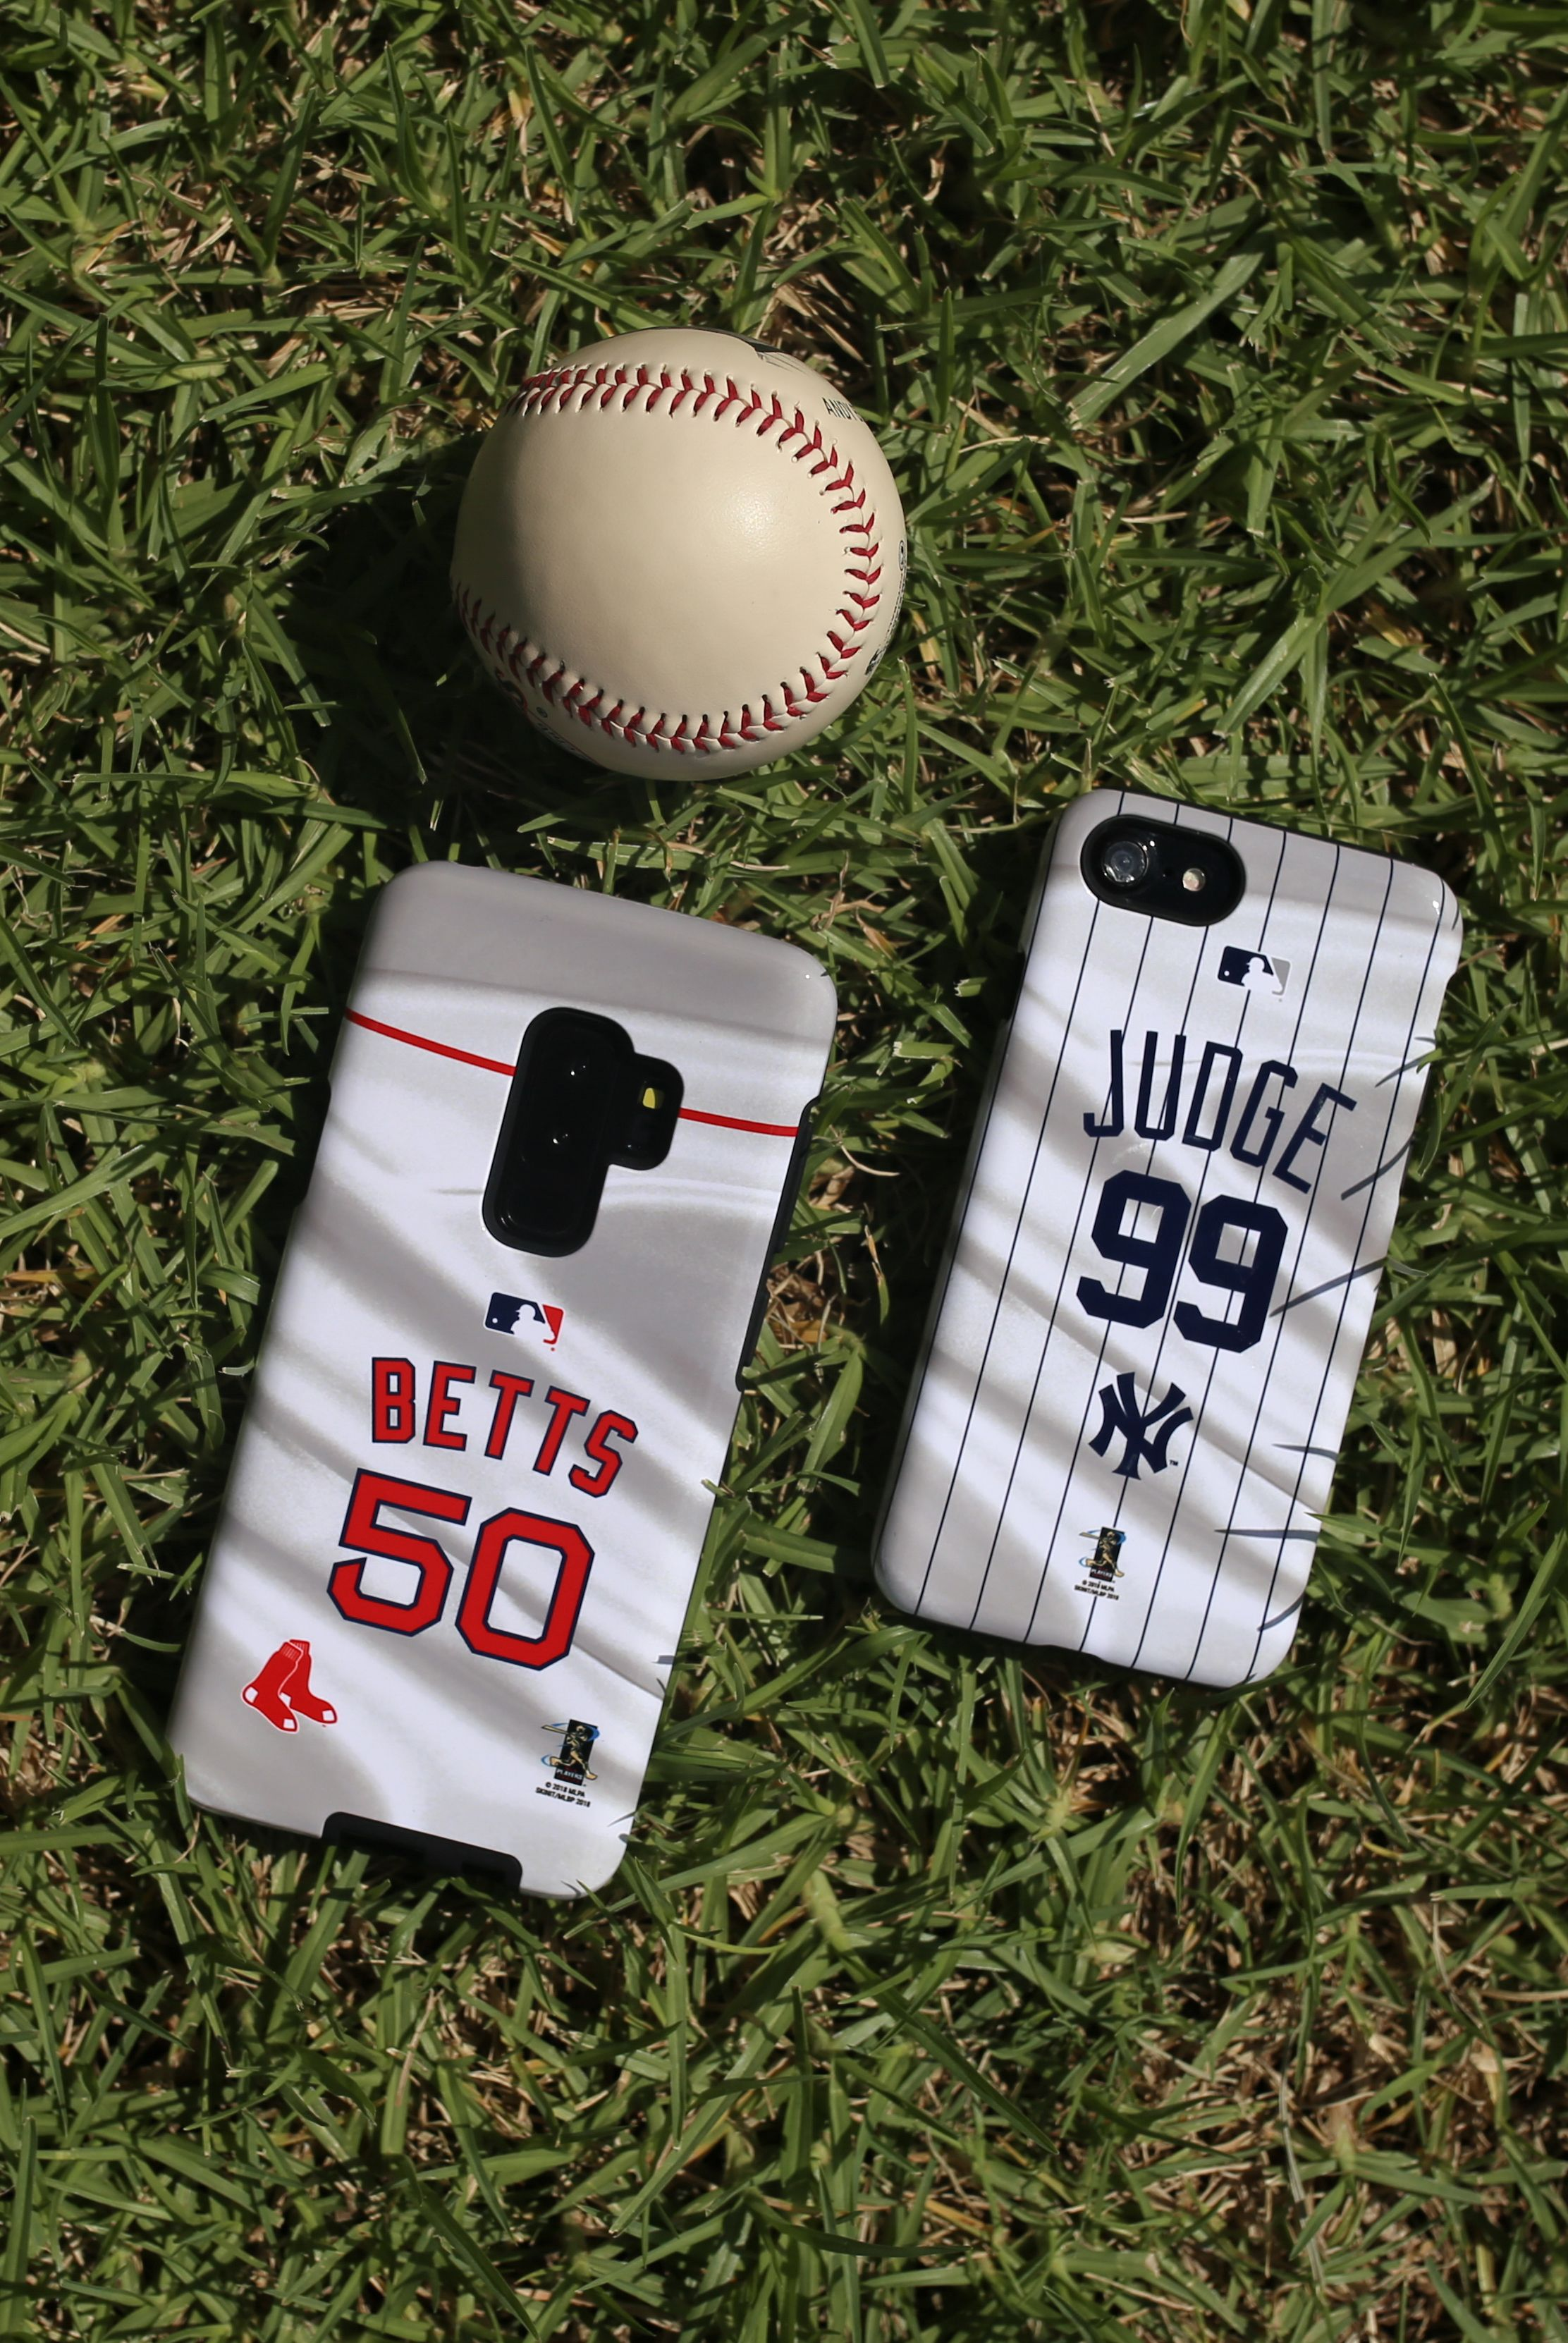 Mlb Iphone And Galaxy Phone Cases By Skinit Explore Mlb Designs A Collaboration With Mlb X Skinit Skinit Has Partnered With Mlb To B Mlb Mlb Gear Mlb Teams